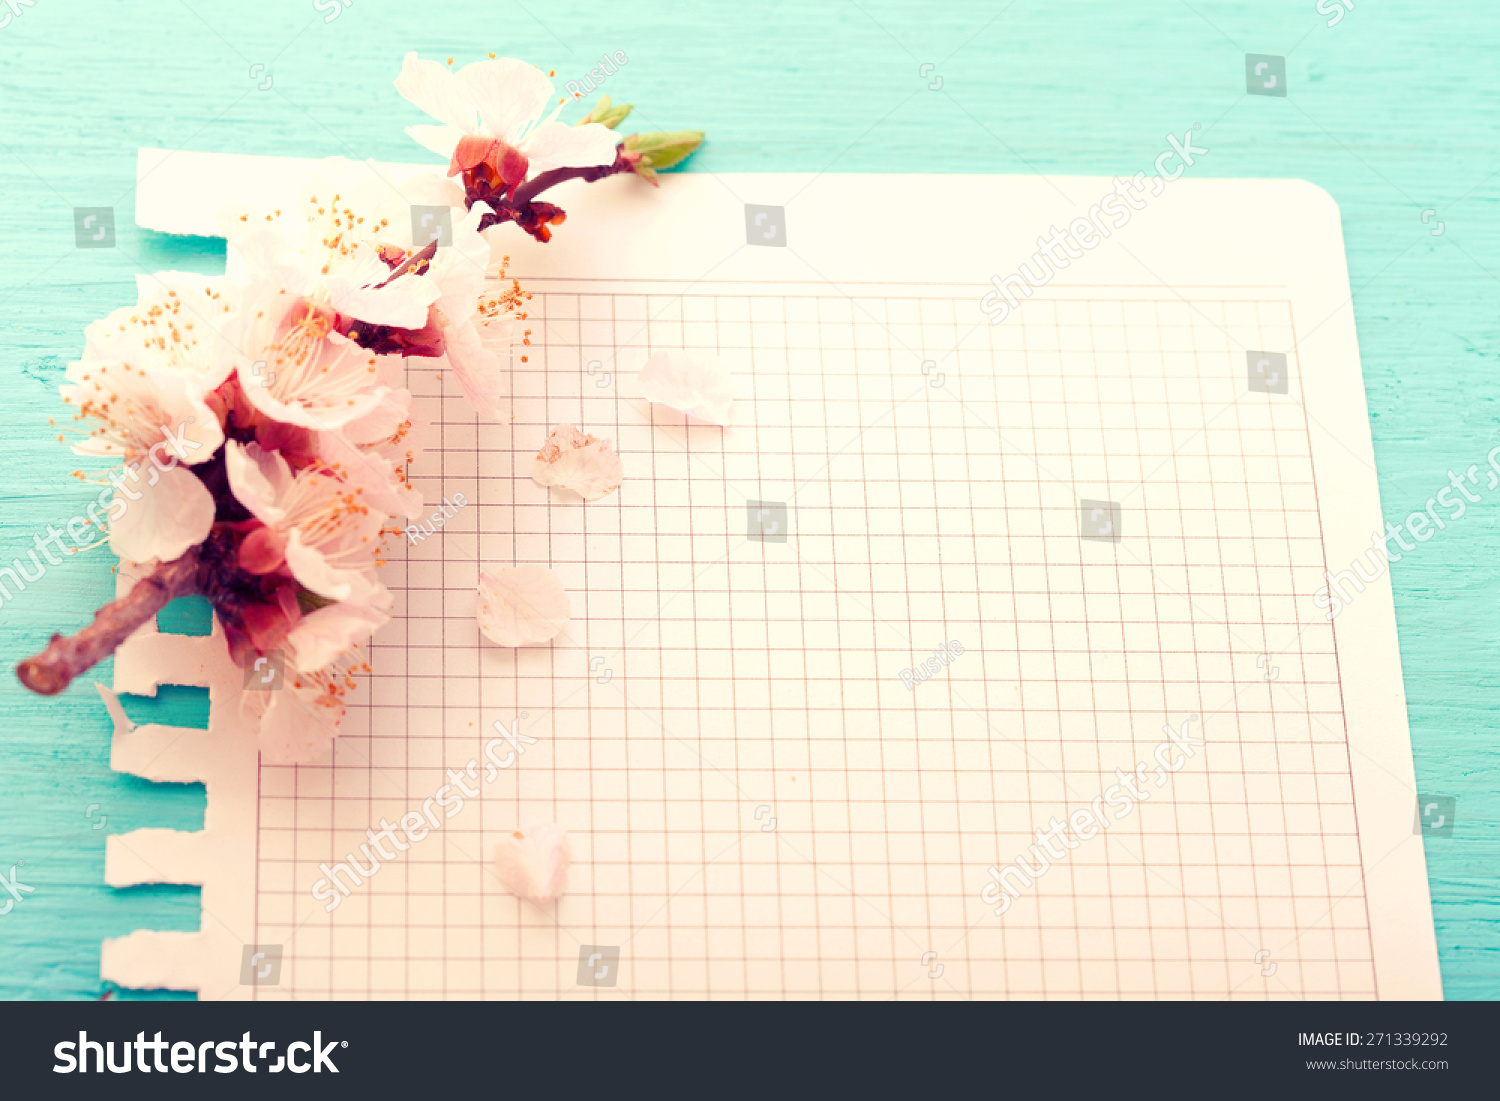 Flowering Branch On Paper Texture Japanese Stock Photo 271339292 ...